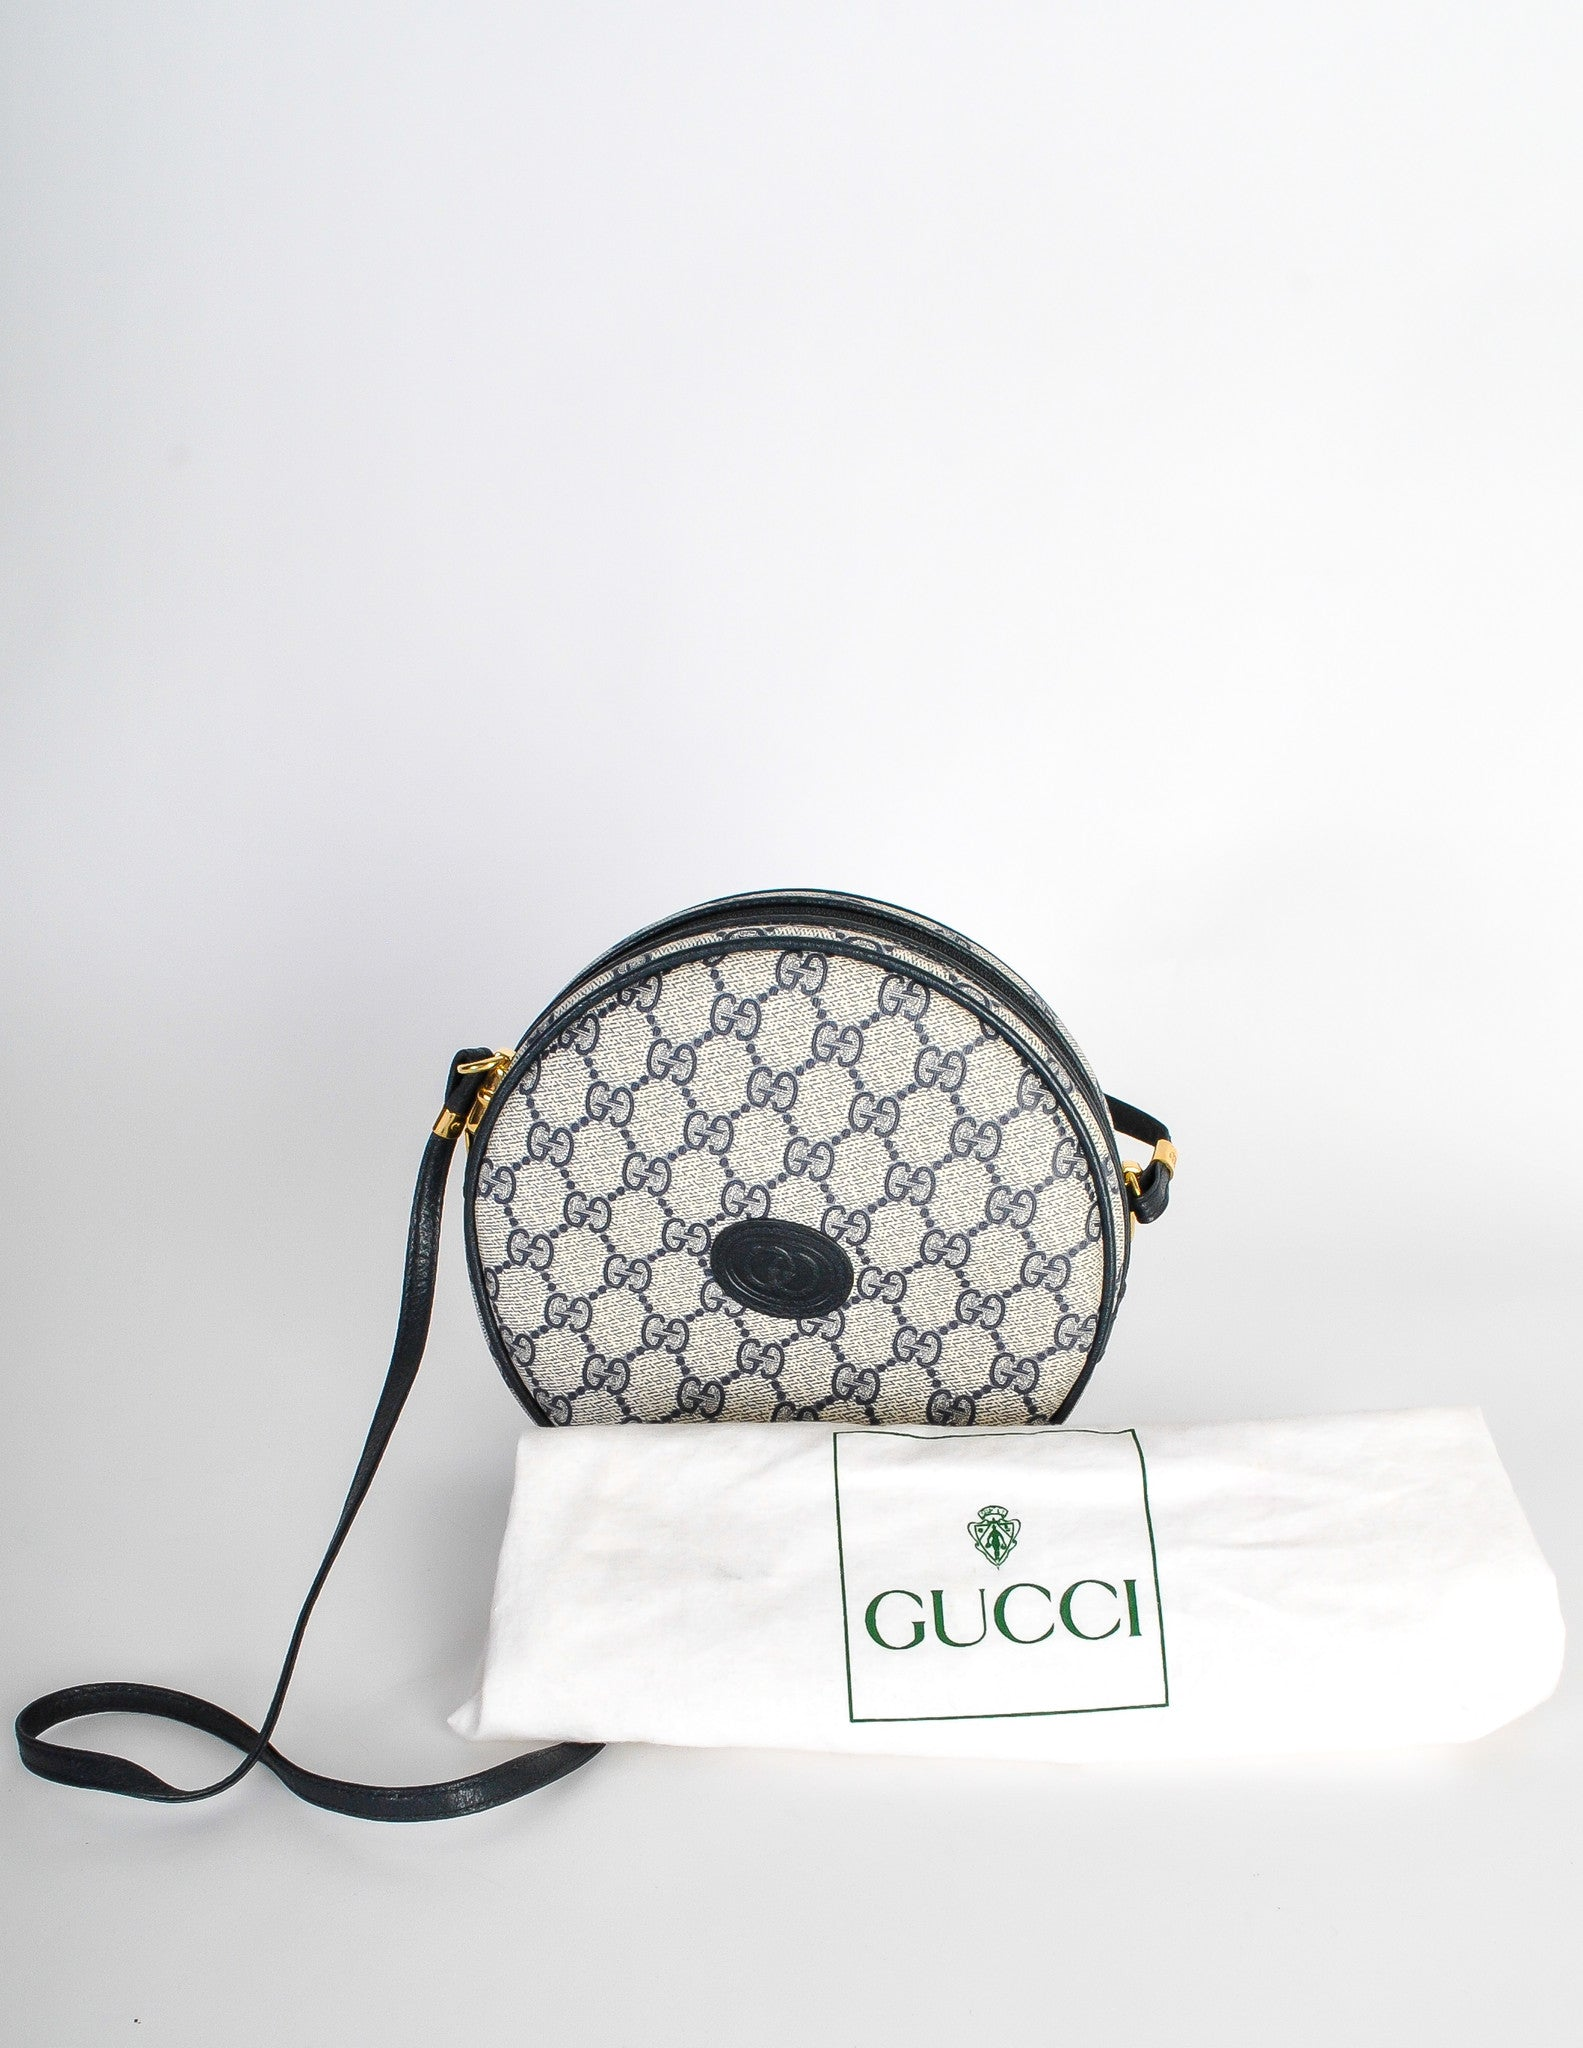 151ca5ac0f1c Gucci Vintage Round Navy Blue Monogram Leather Bag - Amarcord Vintage  Fashion - 7